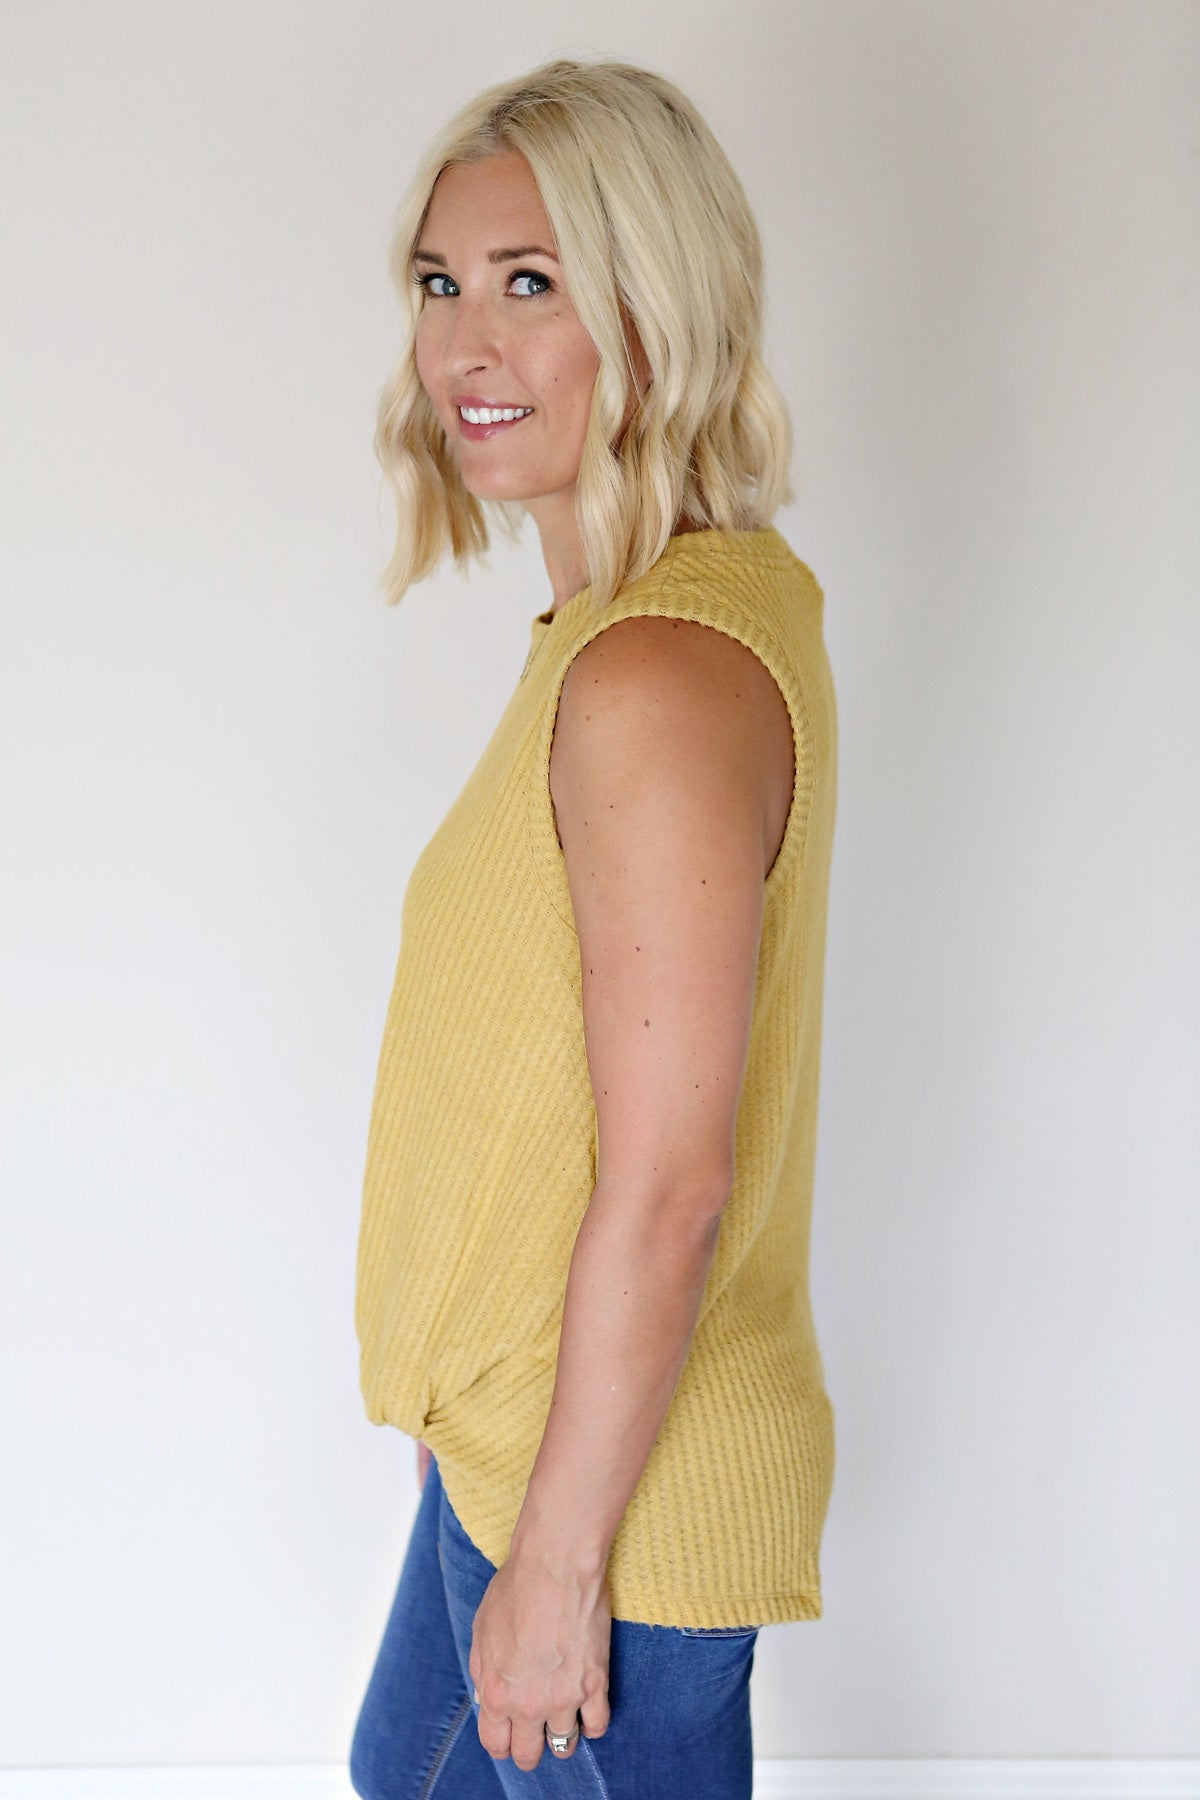 Oliver Top - Mustard - FINAL SALE - Gray Monroe